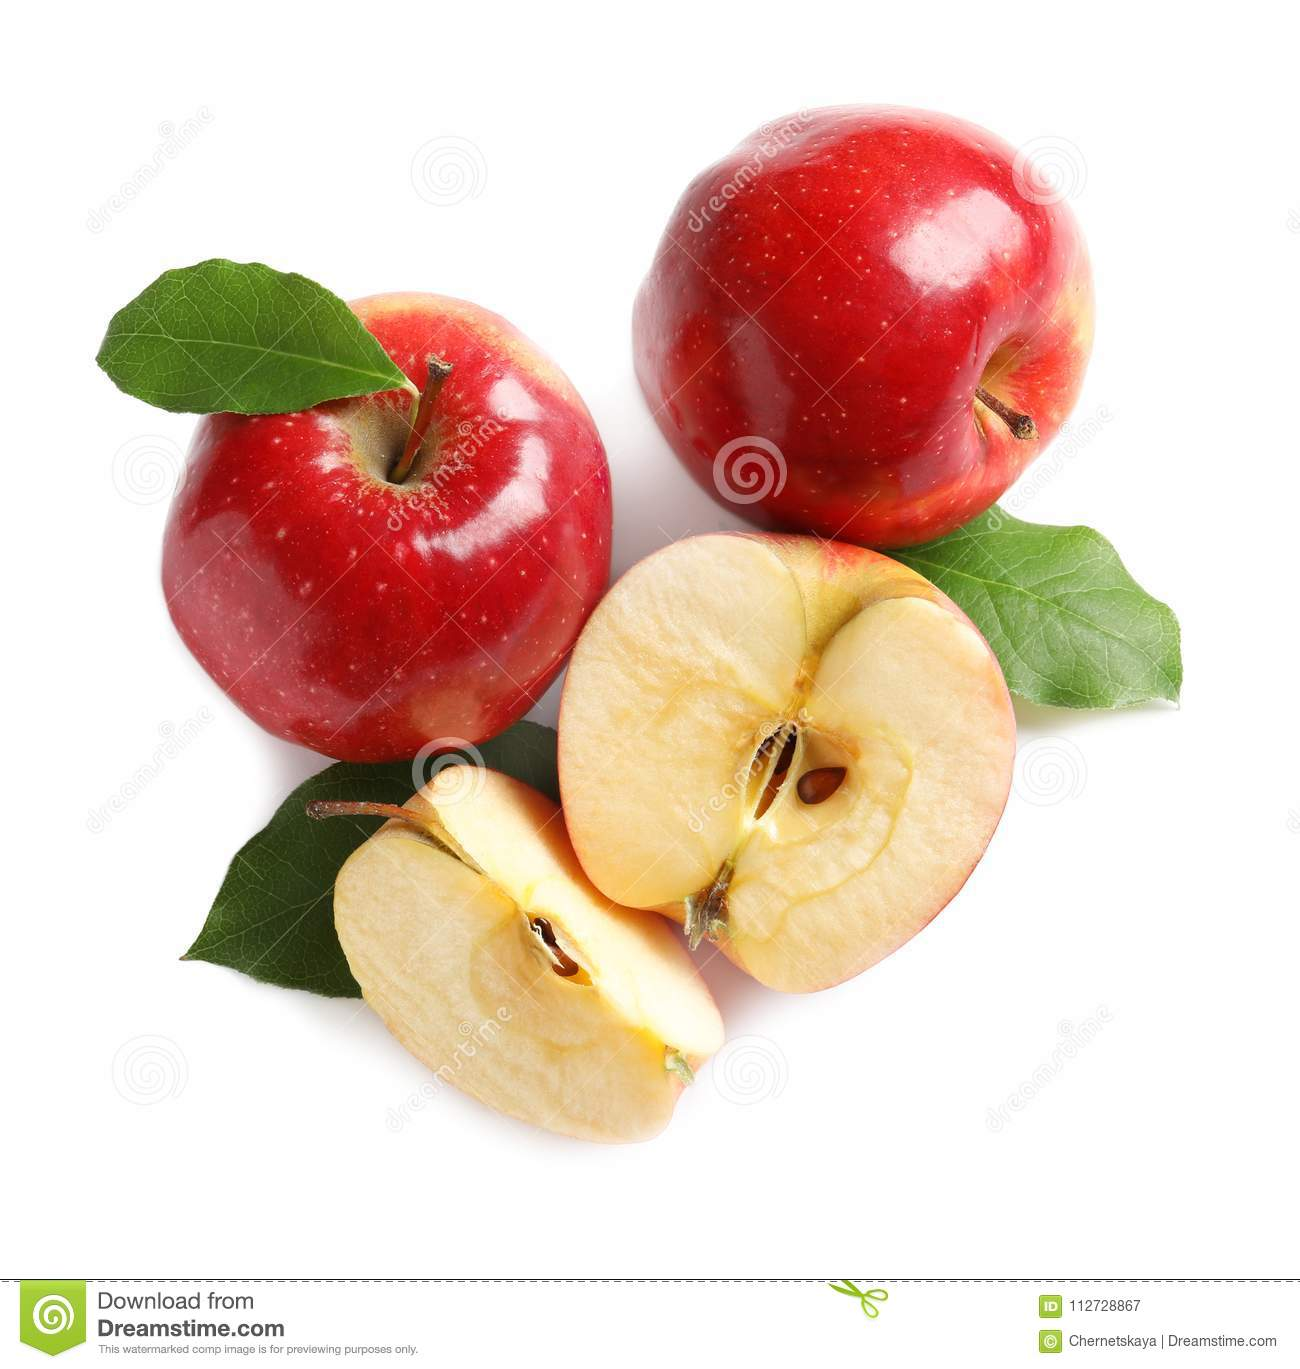 Ripe red apples with slices